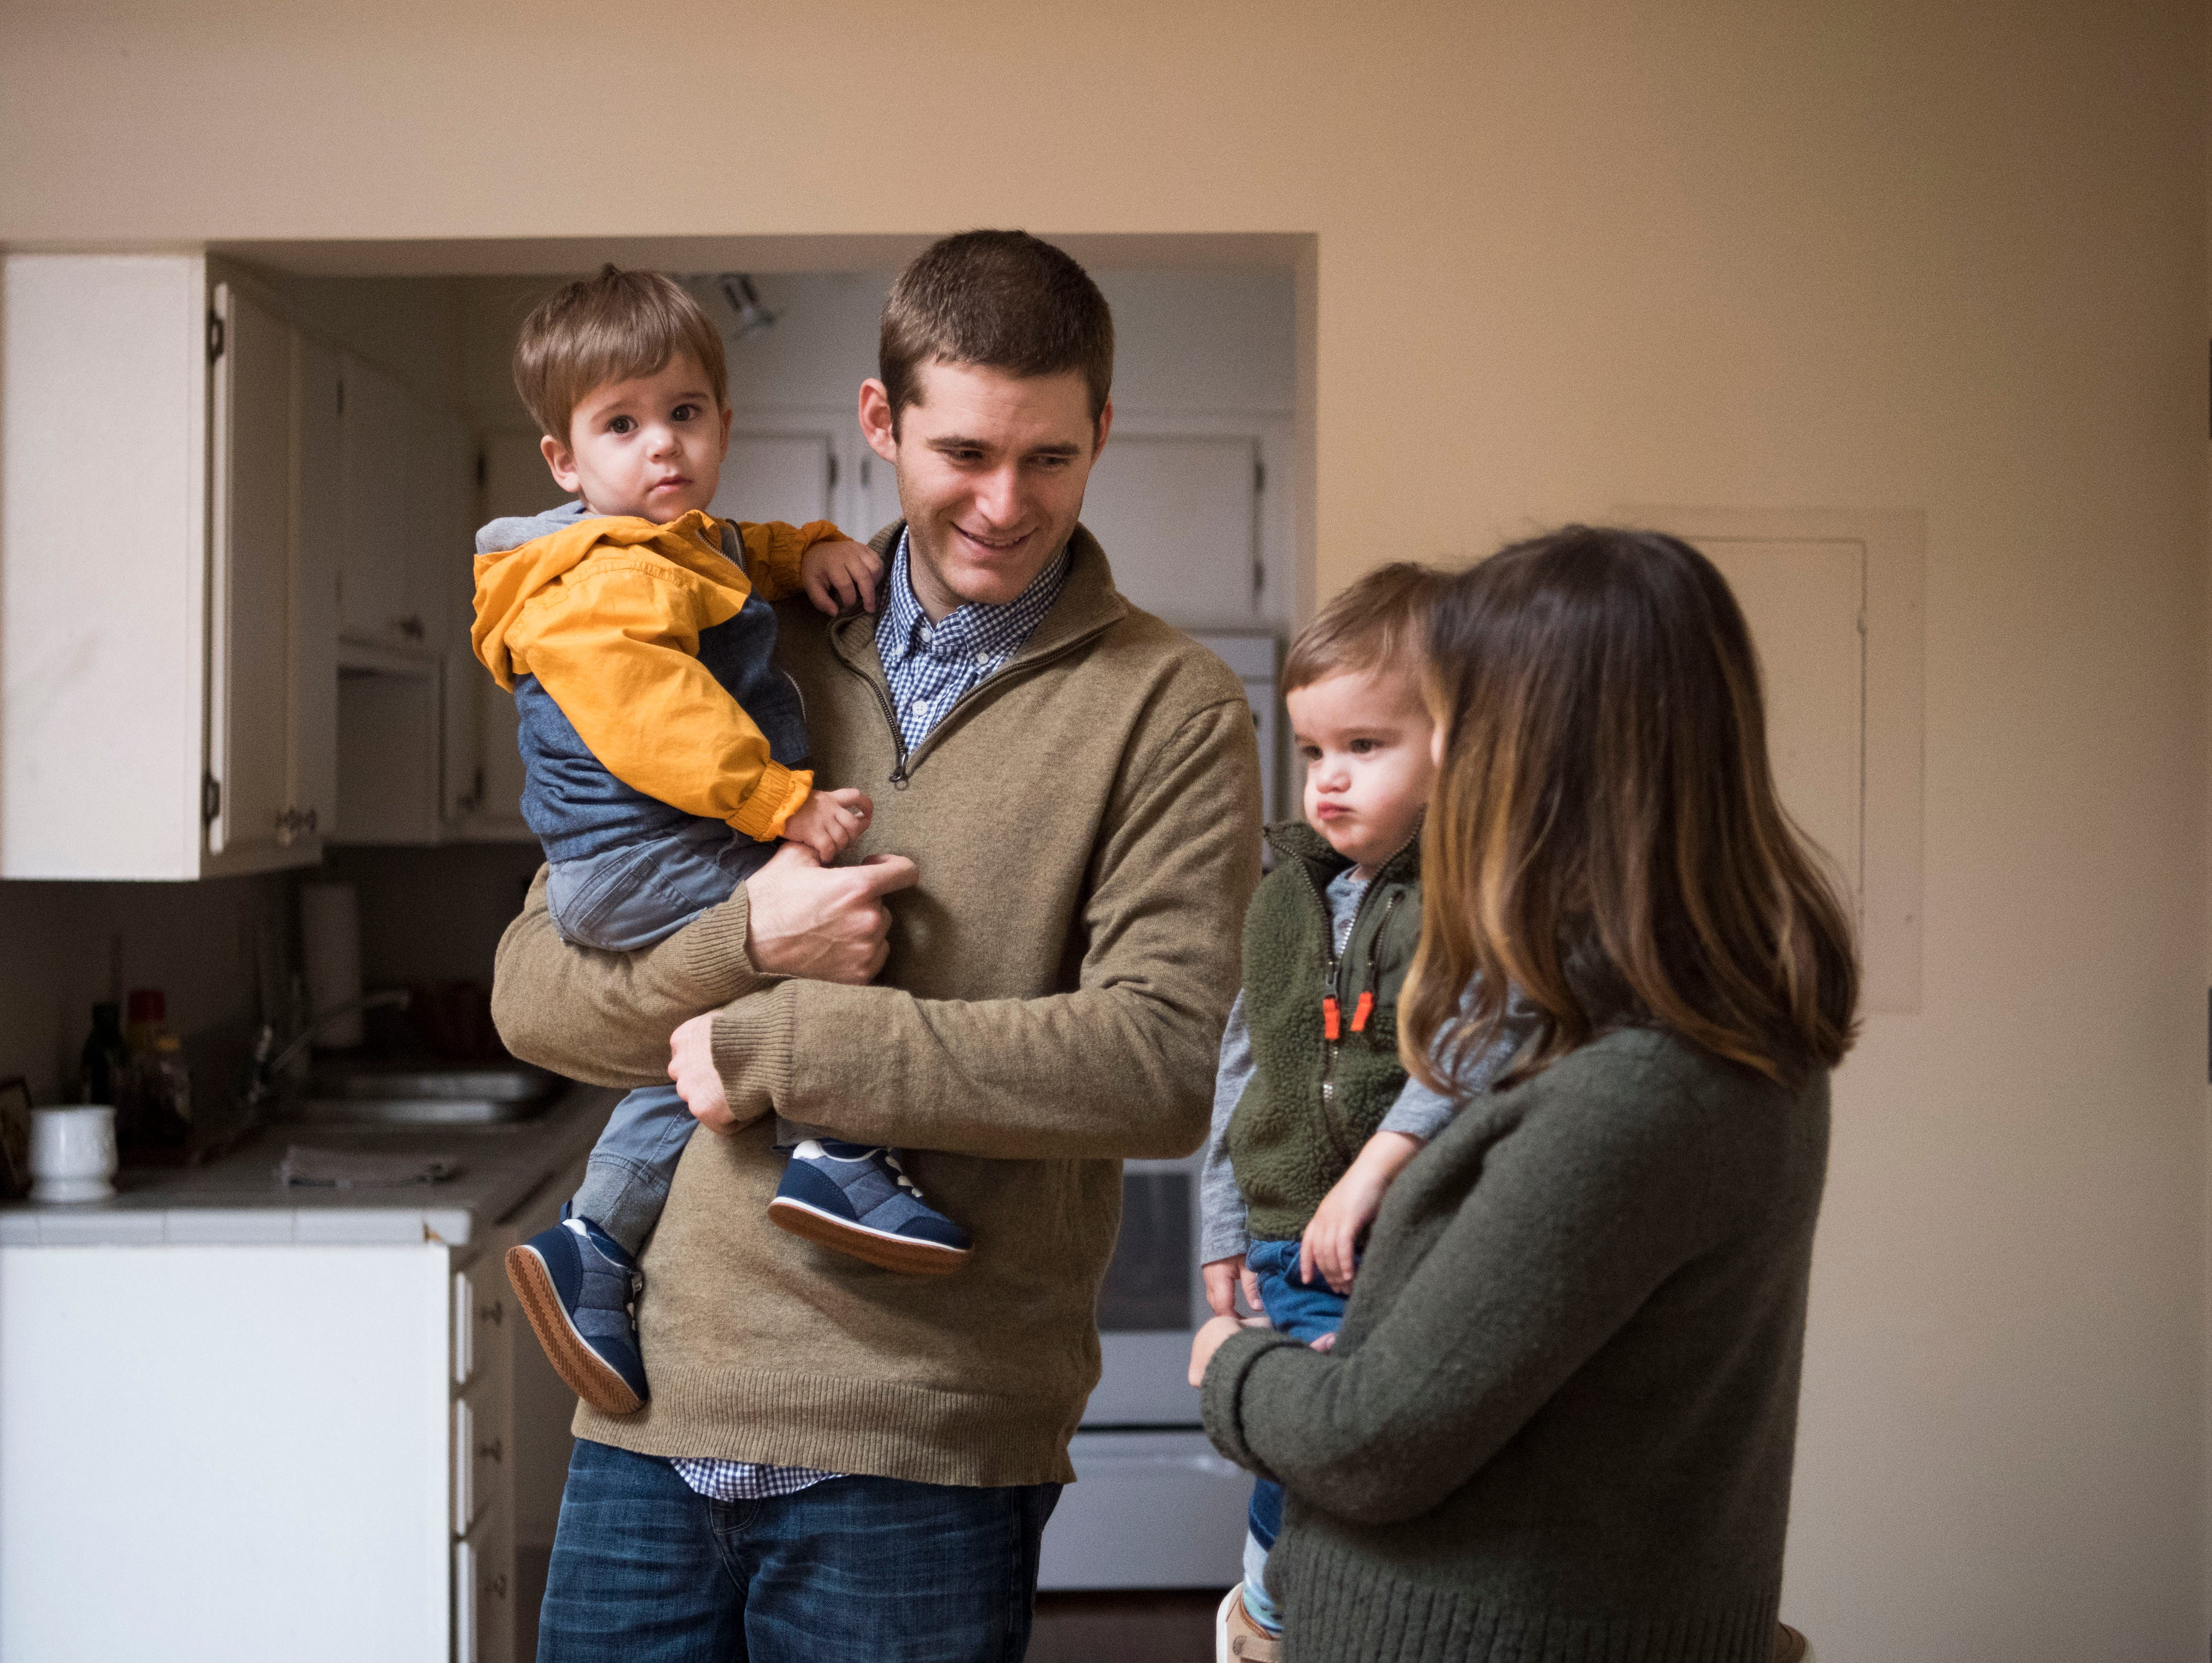 Dylan and SuzannevRobinson stand with their 21-month-old twin sons, from left, Pete and Duke, near the dining area in one of 14 short-term rental properties the couple manages in their company Knox Staytion, in Old City Tuesday, Feb. 5, 2019.